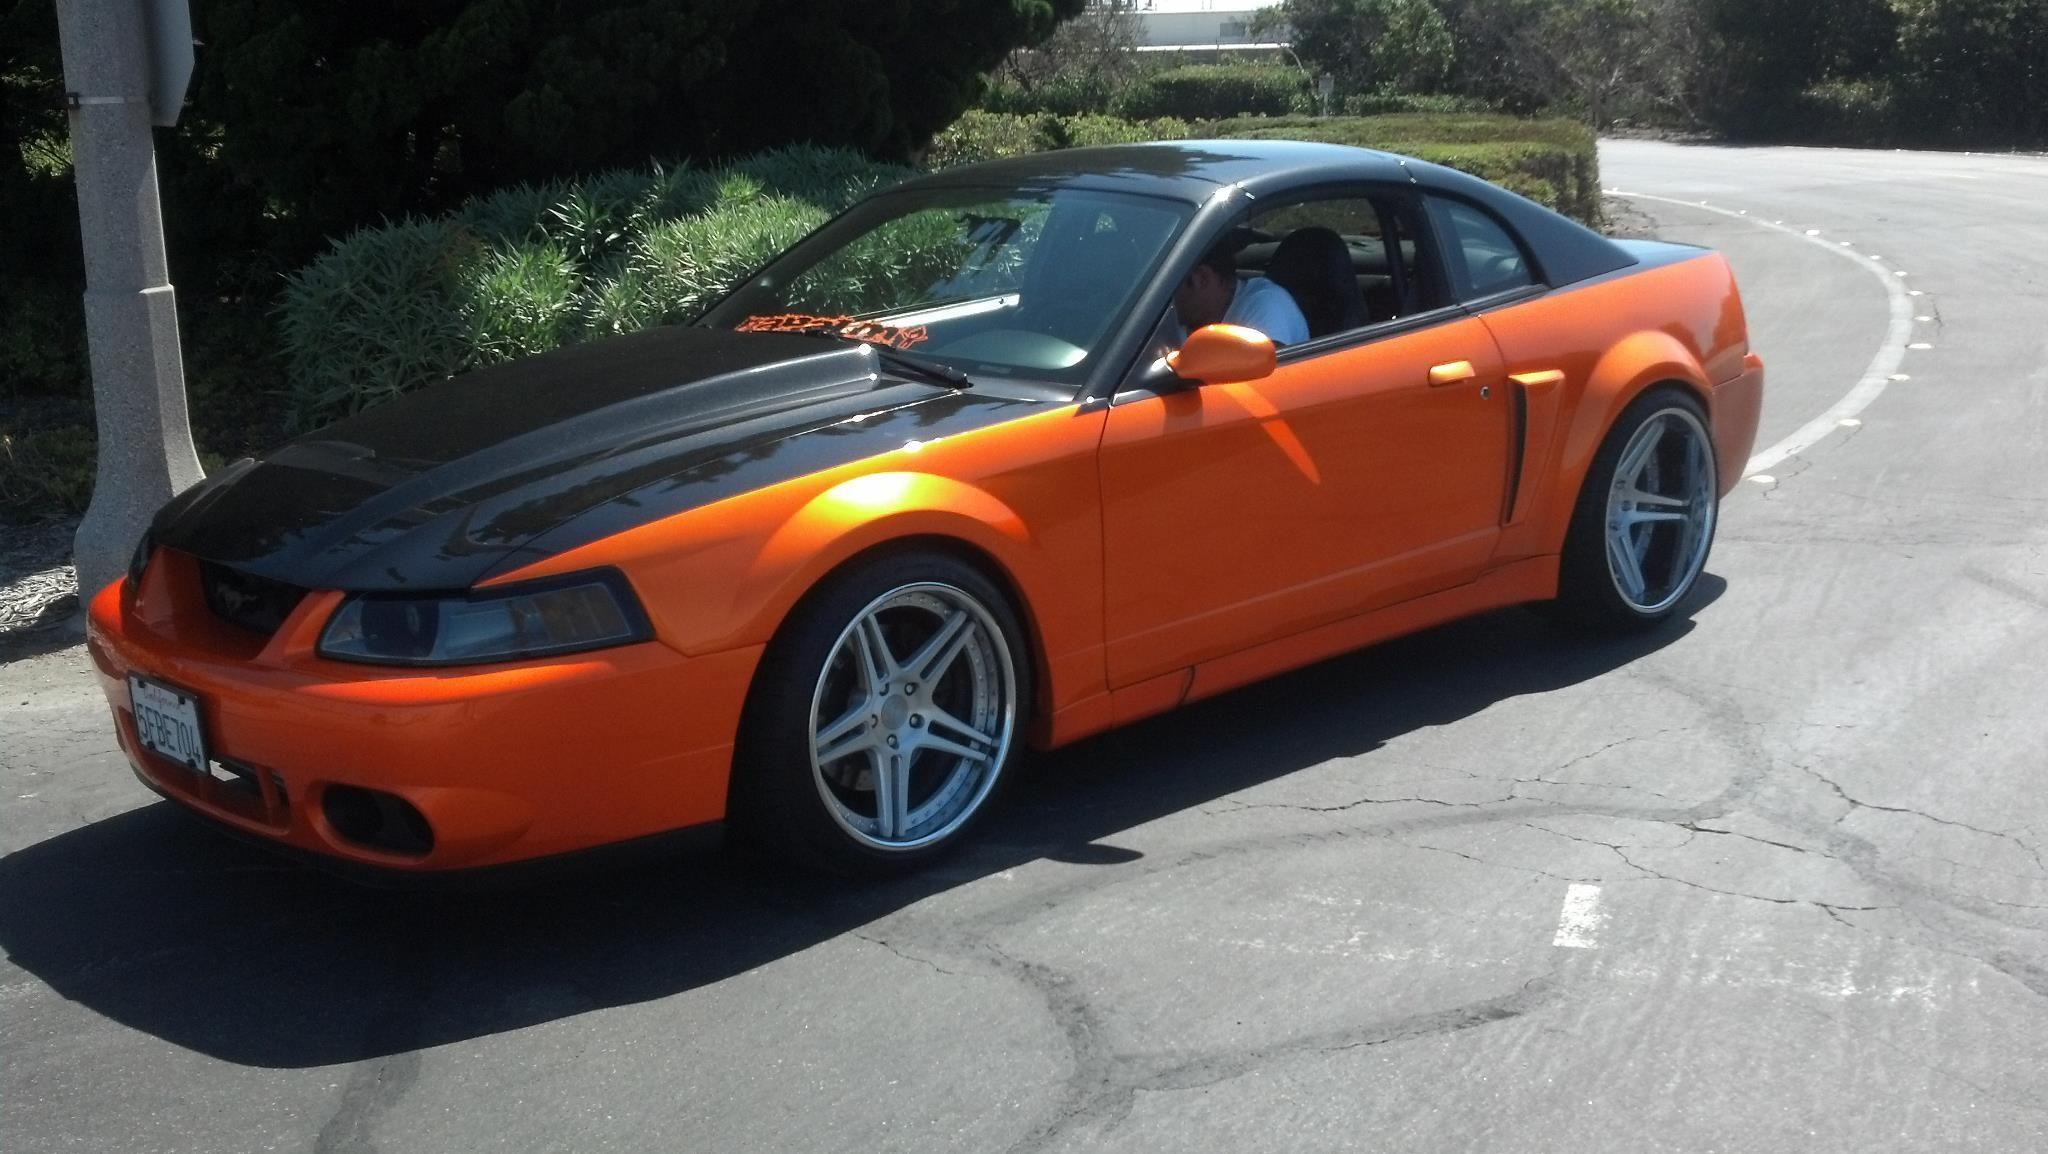 2003 Ford Mustang GT by Full Throttle Kustomz in Oxnard to